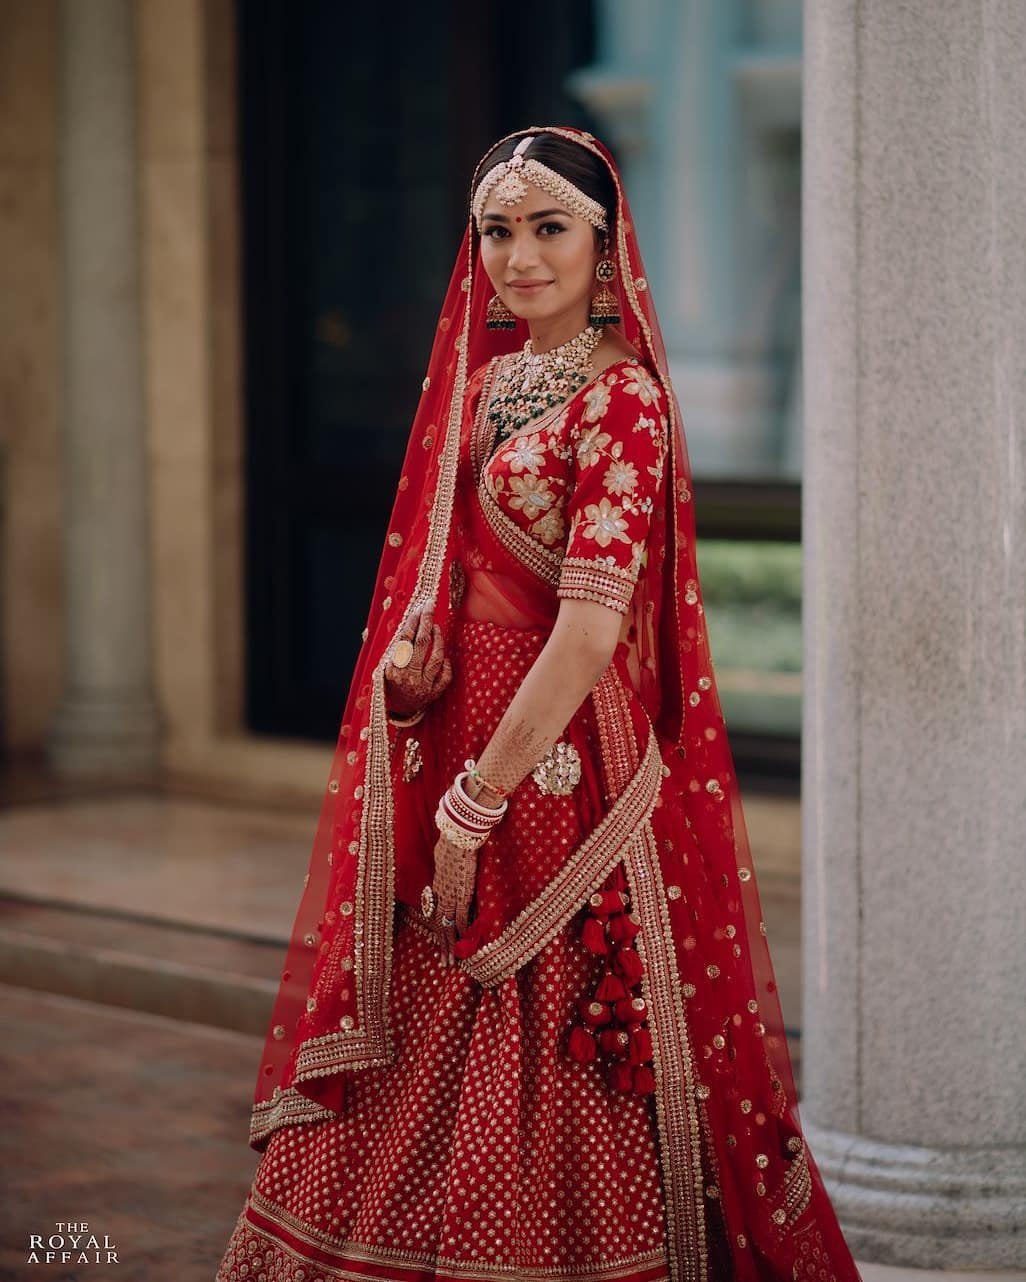 Classic red: Real Bridal Looks, Styles & Dresses Inspirations